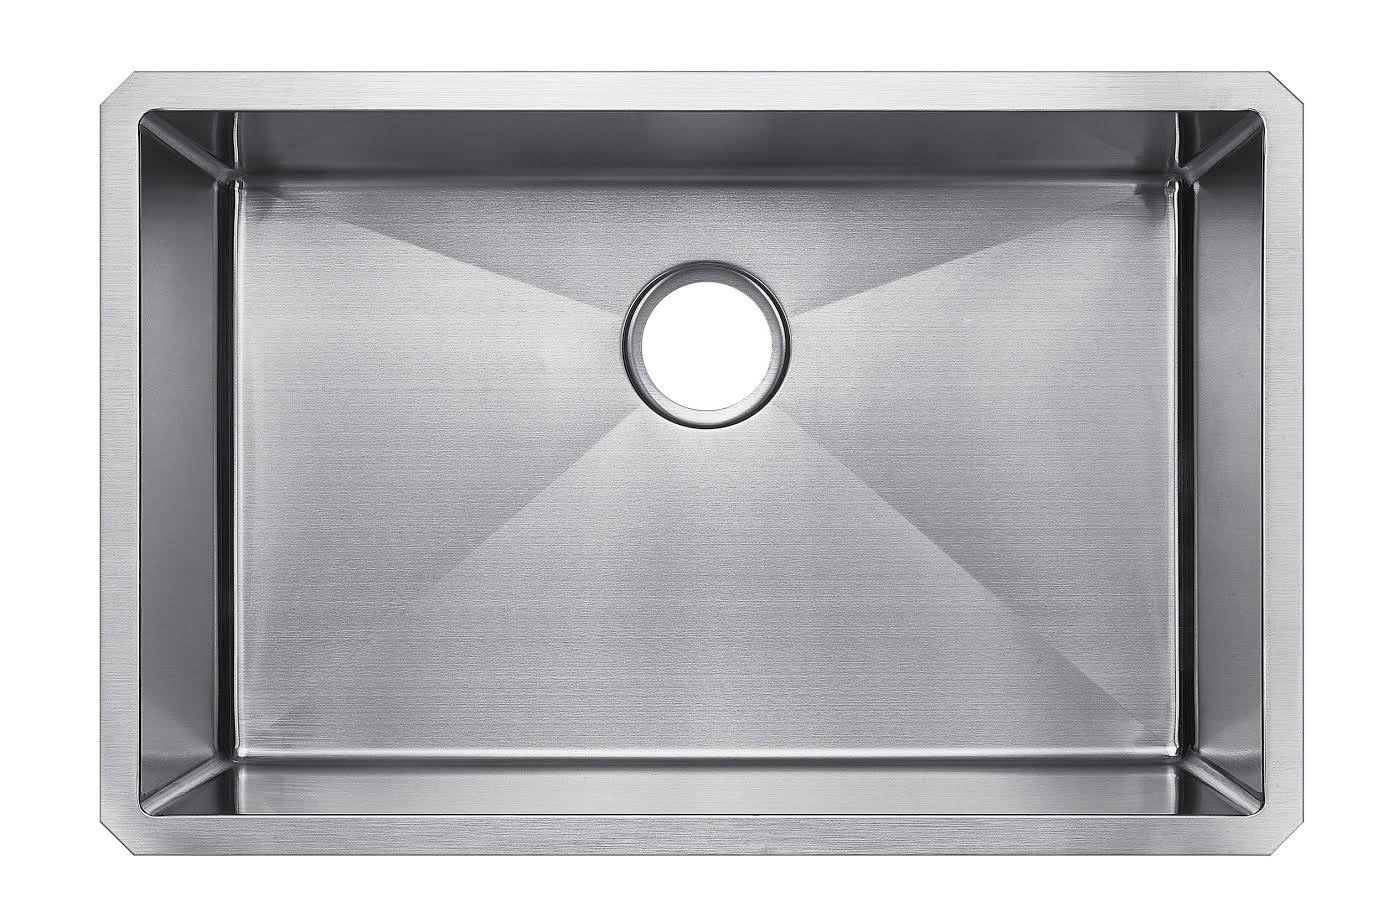 Starstar 32 X 21 Single Bowl Undermount 304 Stainless Steel 16 Gauge Kitchen Sink